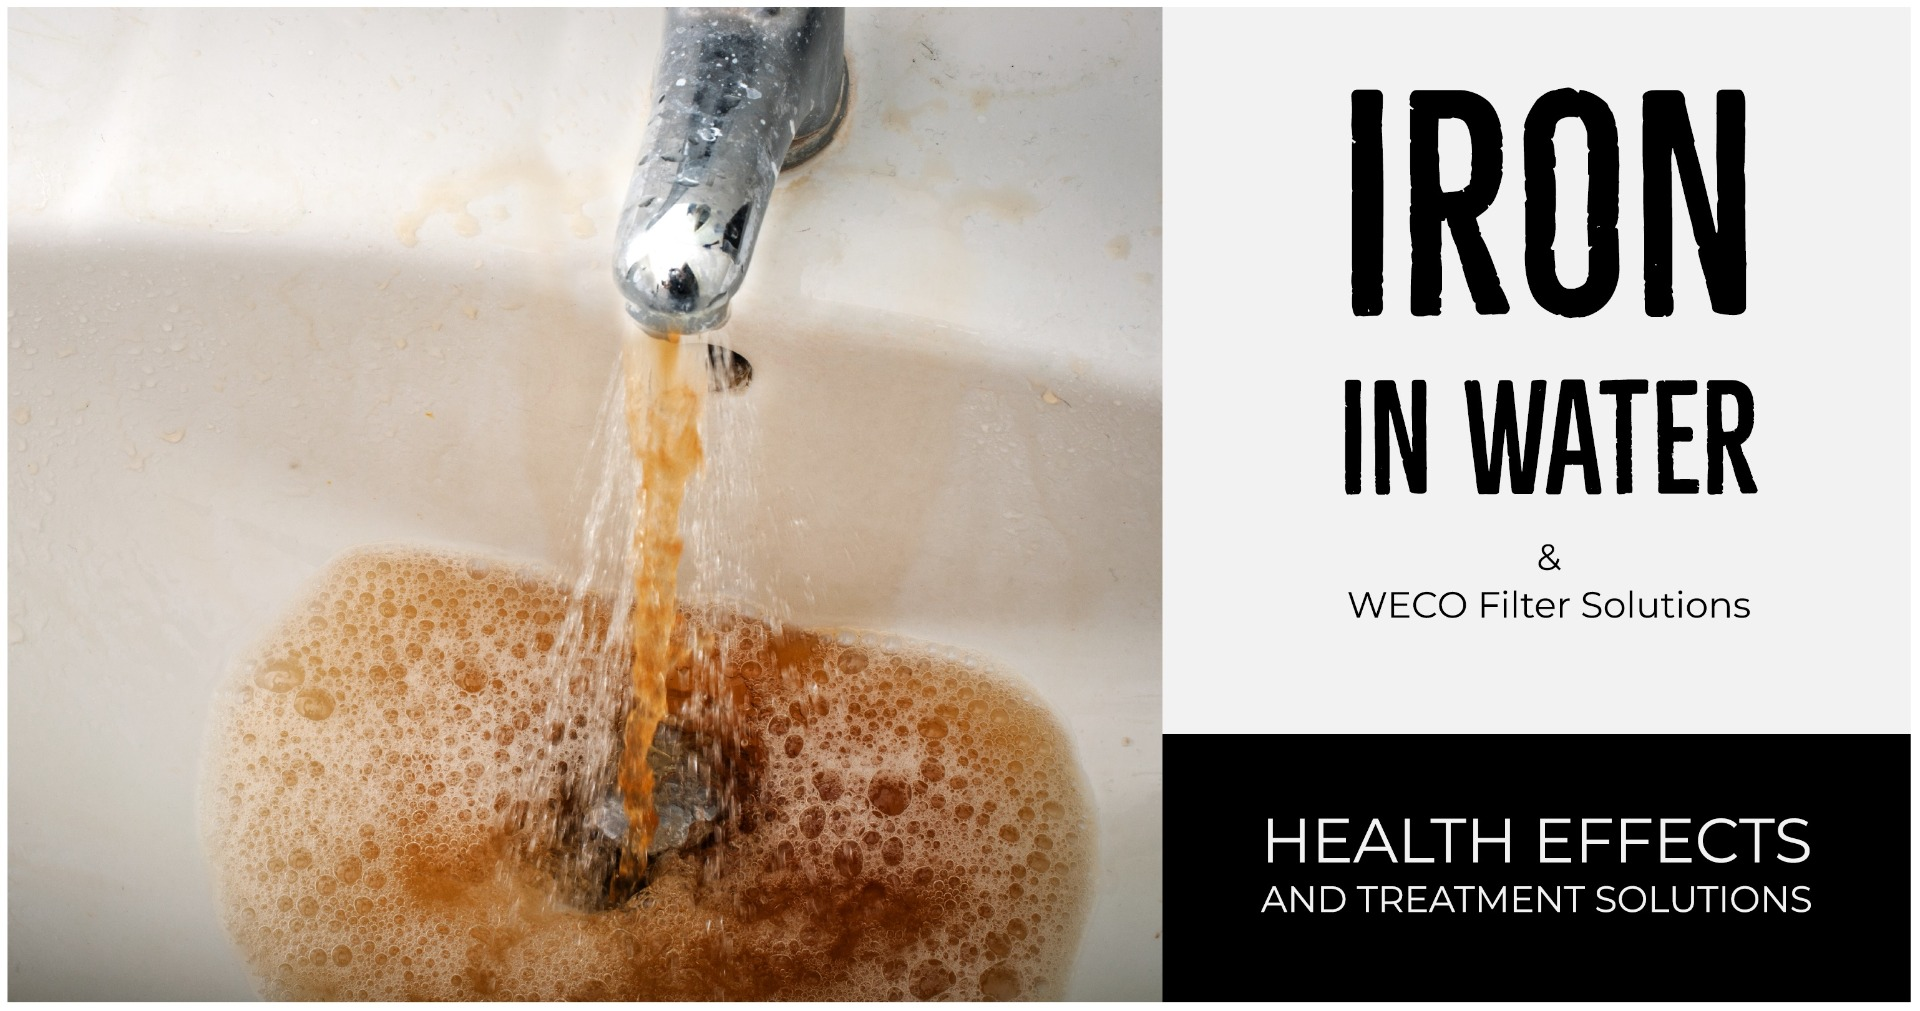 Iron in Water